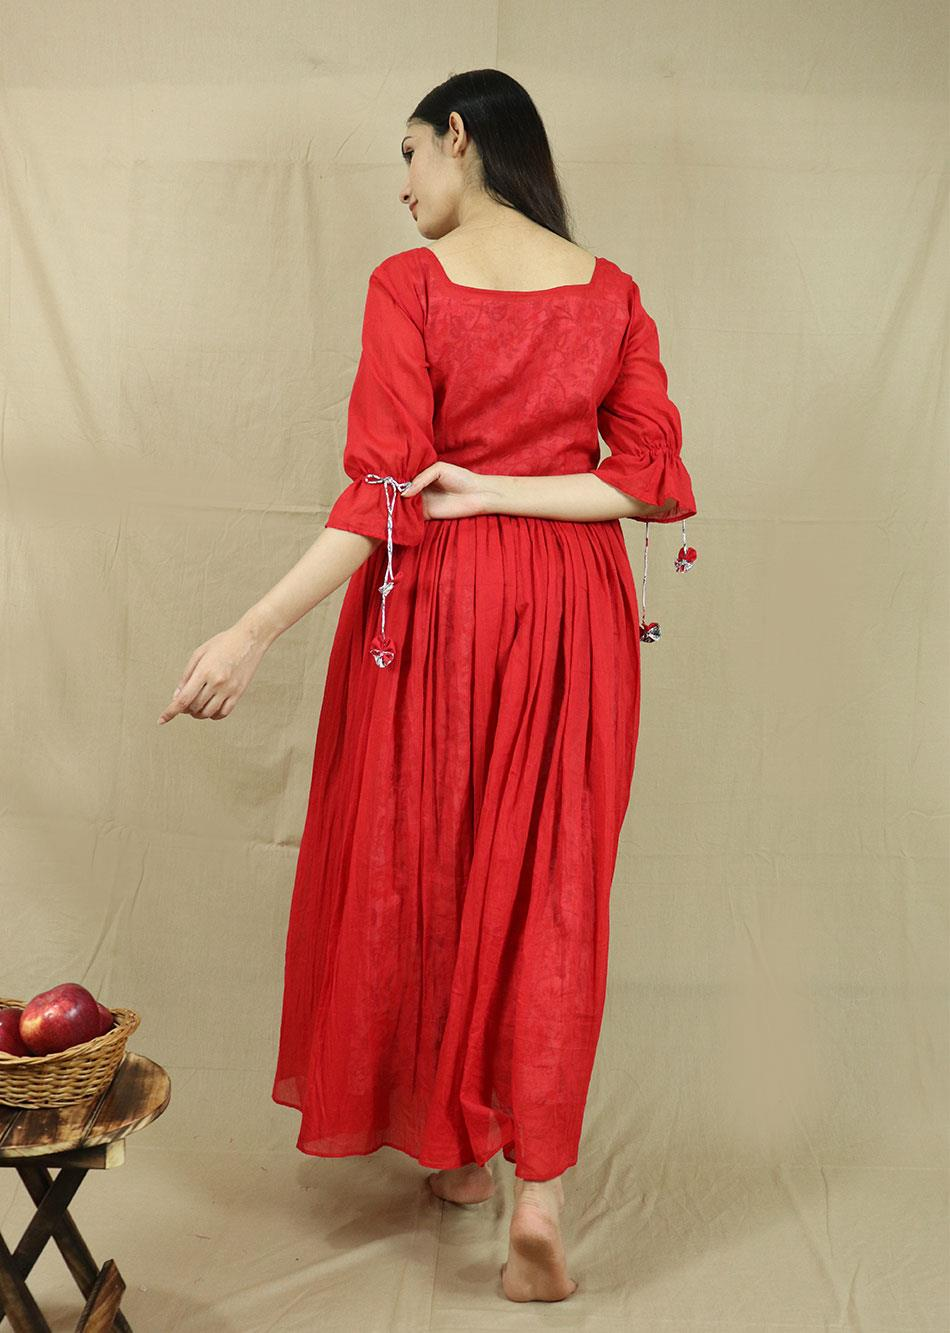 THE AUTUMN DRESS  (With Printed Inner) By Jovi Fashion